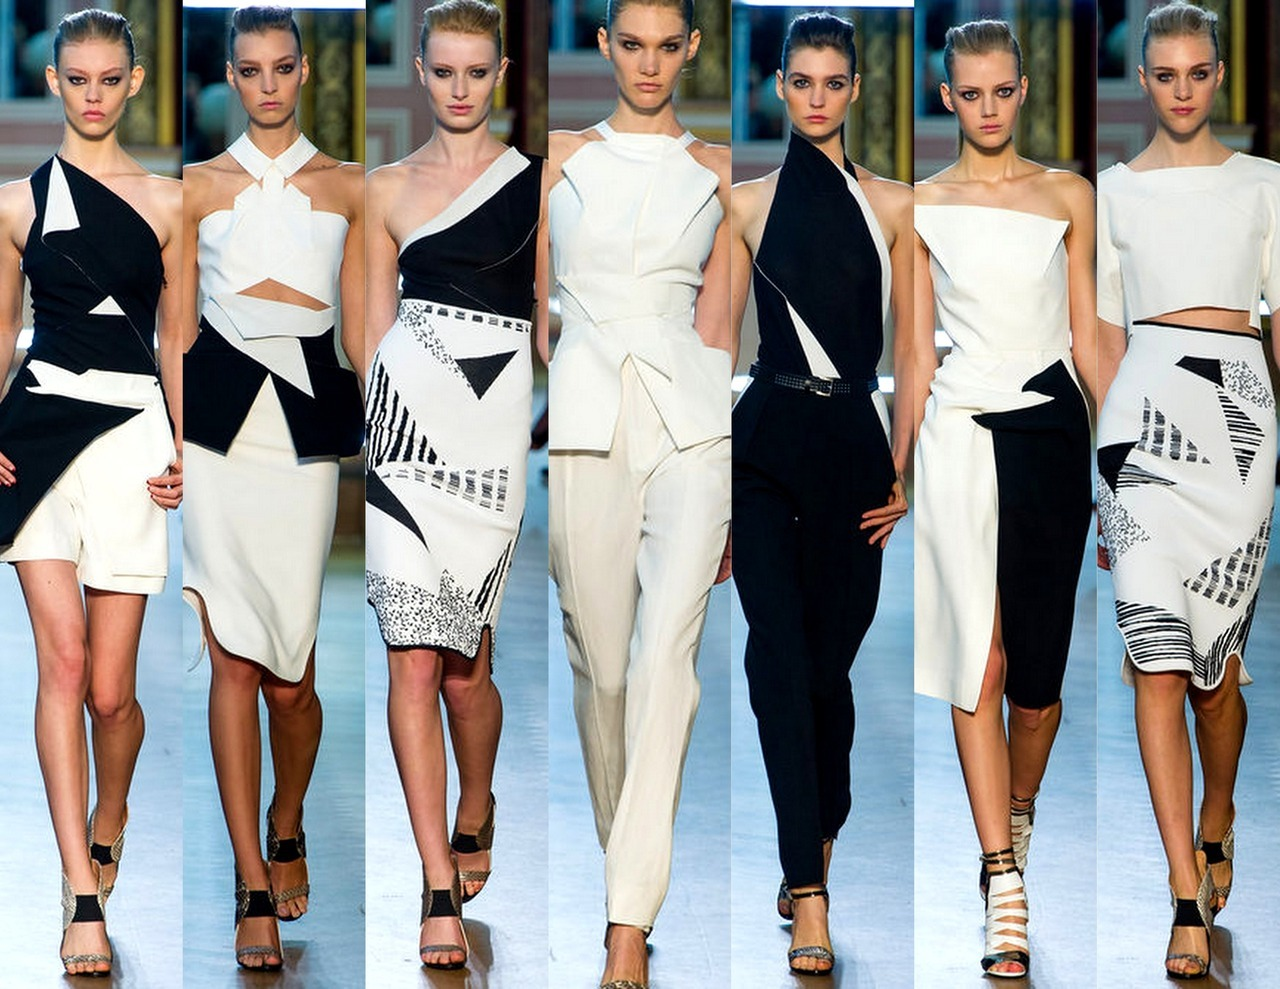 Faking Fashion - Trend-spotting Complex Geometries; Roland Mouret Spring 2013 - Paris                                                         This season is all about mixing up silhouettes and shapes. Roland Mouret's Black and white bias played into the designer's experiments with form, sculpting each look into something different but keeping in like with a strict structured tone. We've seen this trend develop on the Paris runways and at Roland Mouret these looks were harmonized by other colors of the season - red, forrest green & navy.